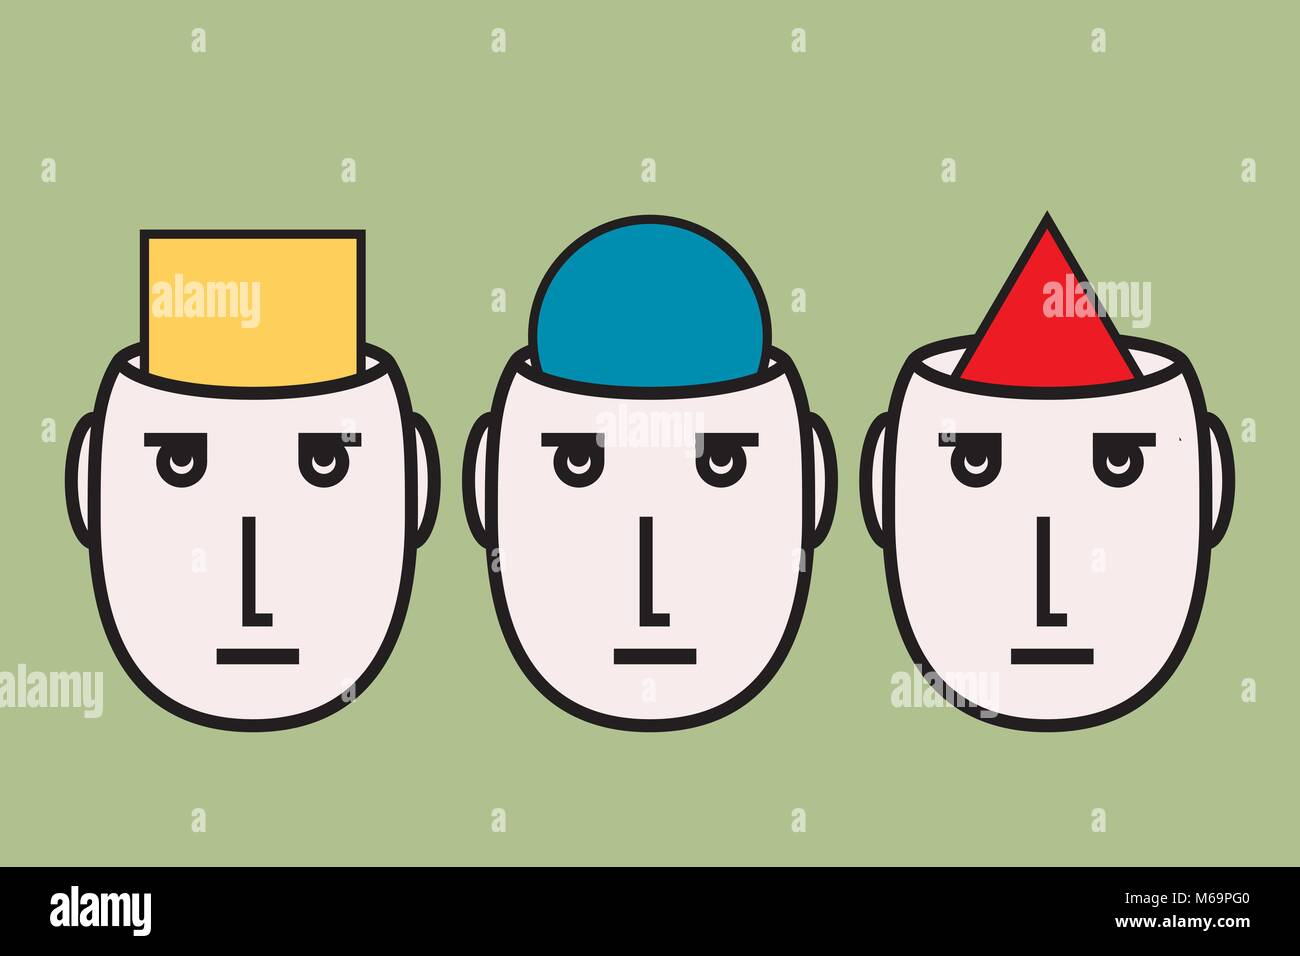 oppinion diversity: people having different convictions; Stock Vector